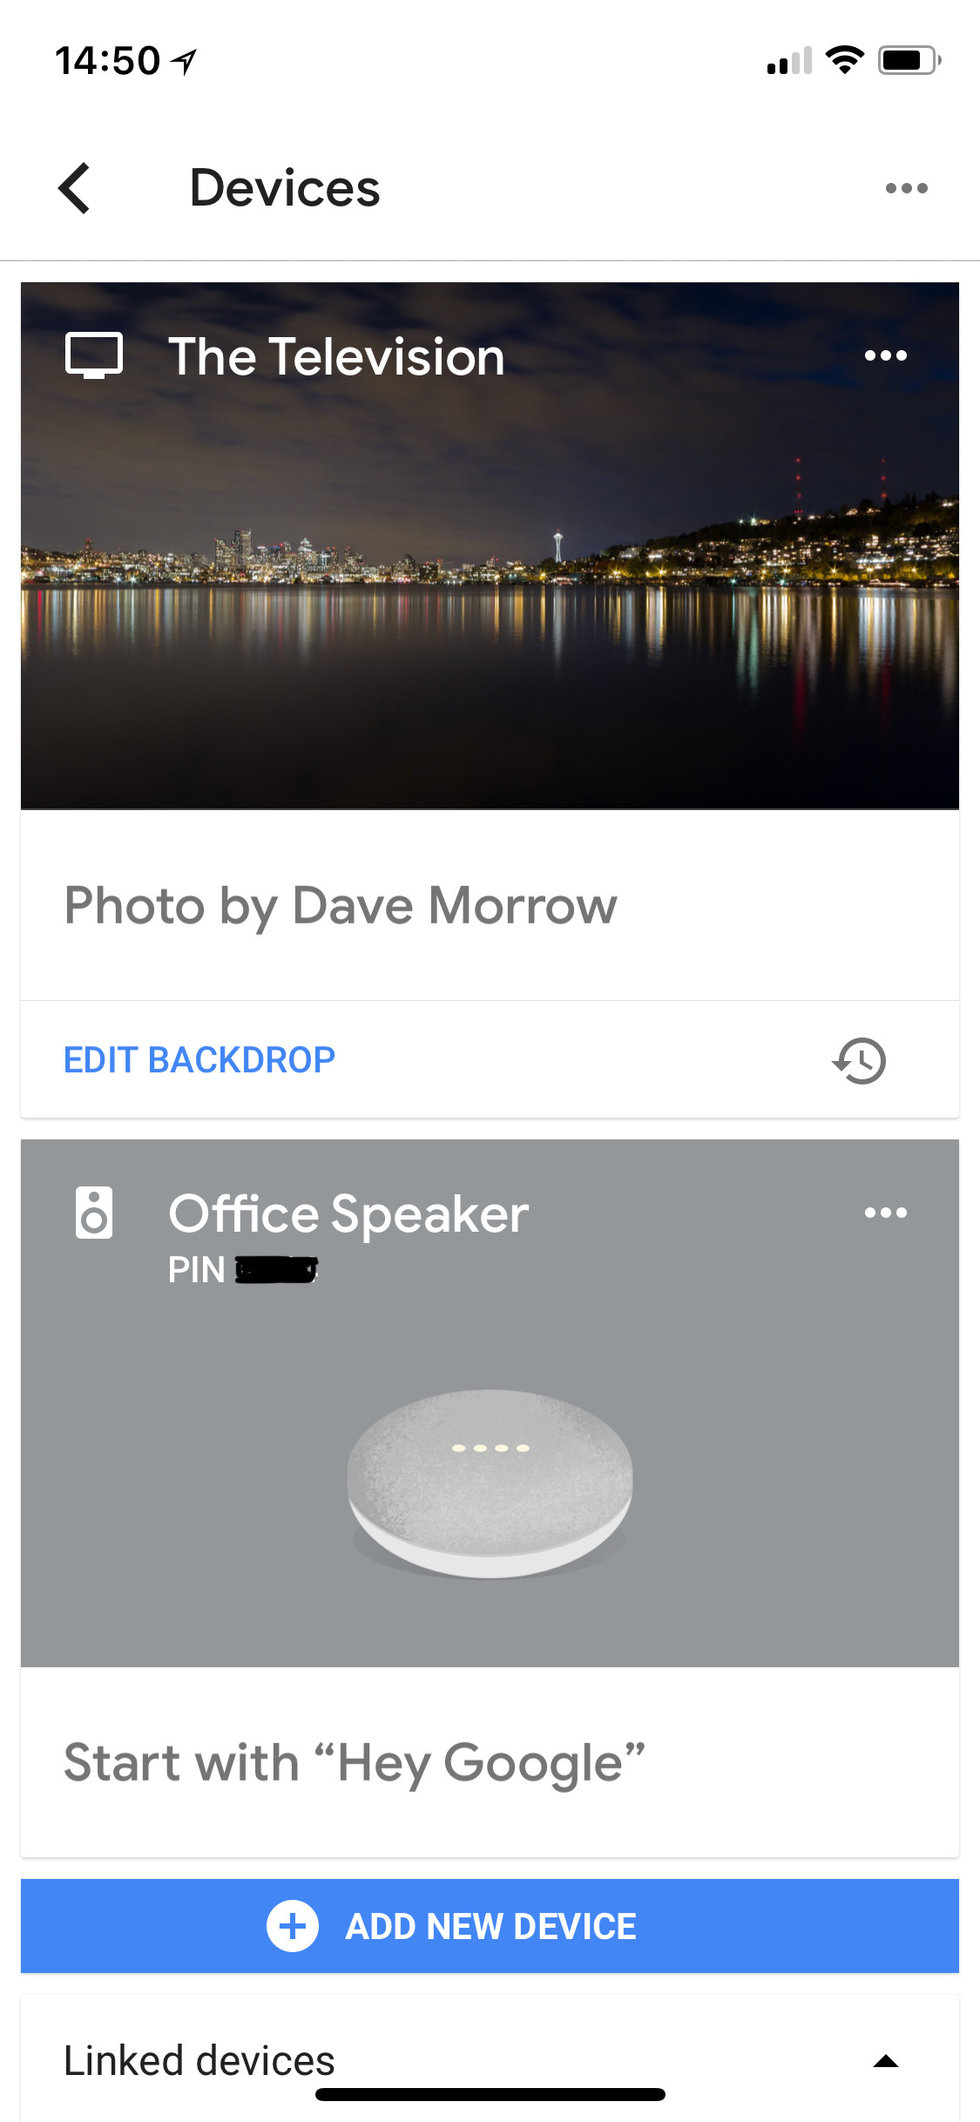 Google Home app for setting up your TV to Google Home.